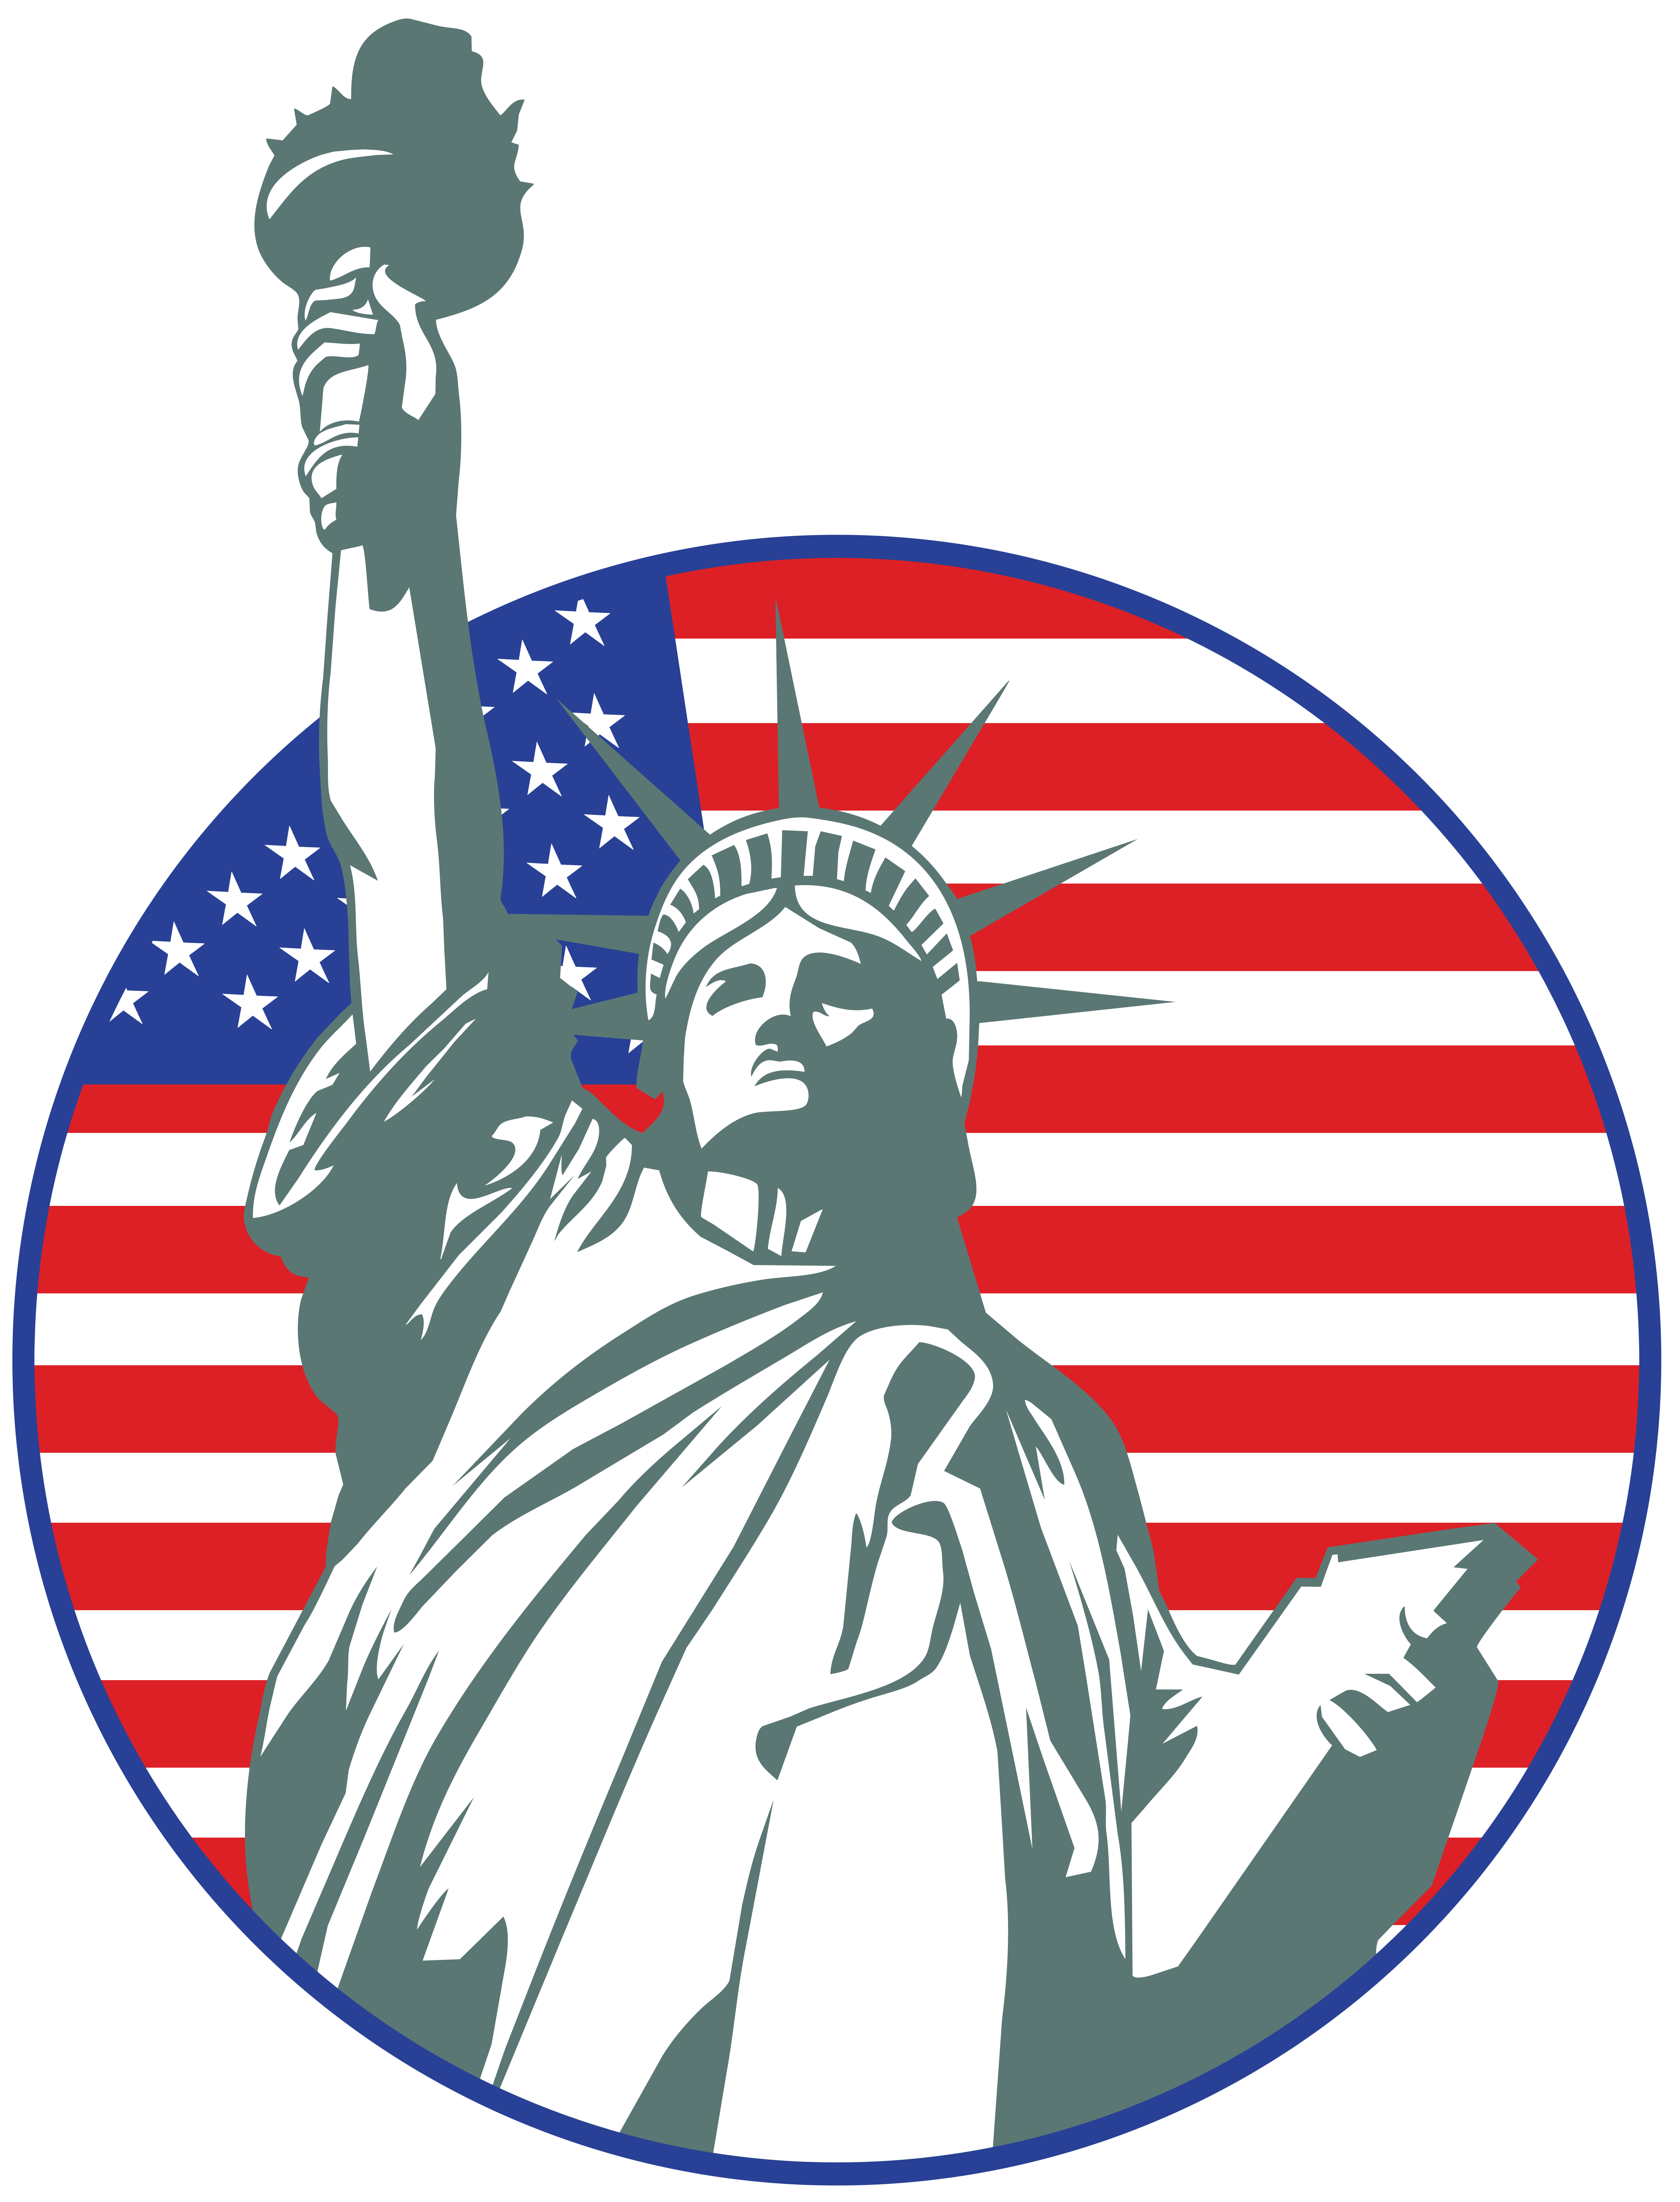 Statue of liberty crown clipart picture stock Statue Of Liberty Clipart at GetDrawings.com | Free for personal use ... picture stock